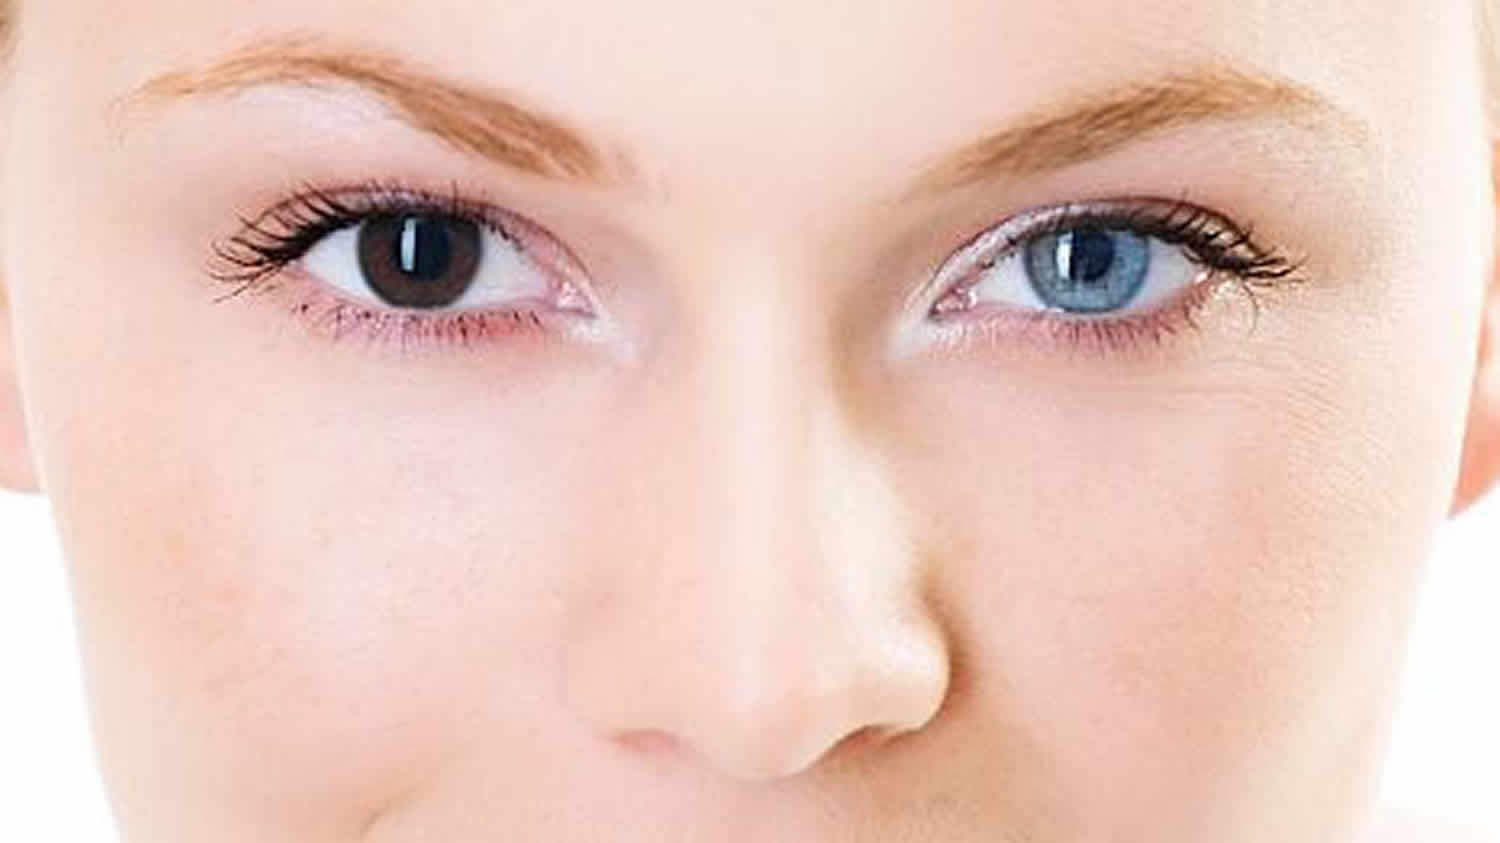 Heterochromia Eyes In Humans Causes How Rare Is